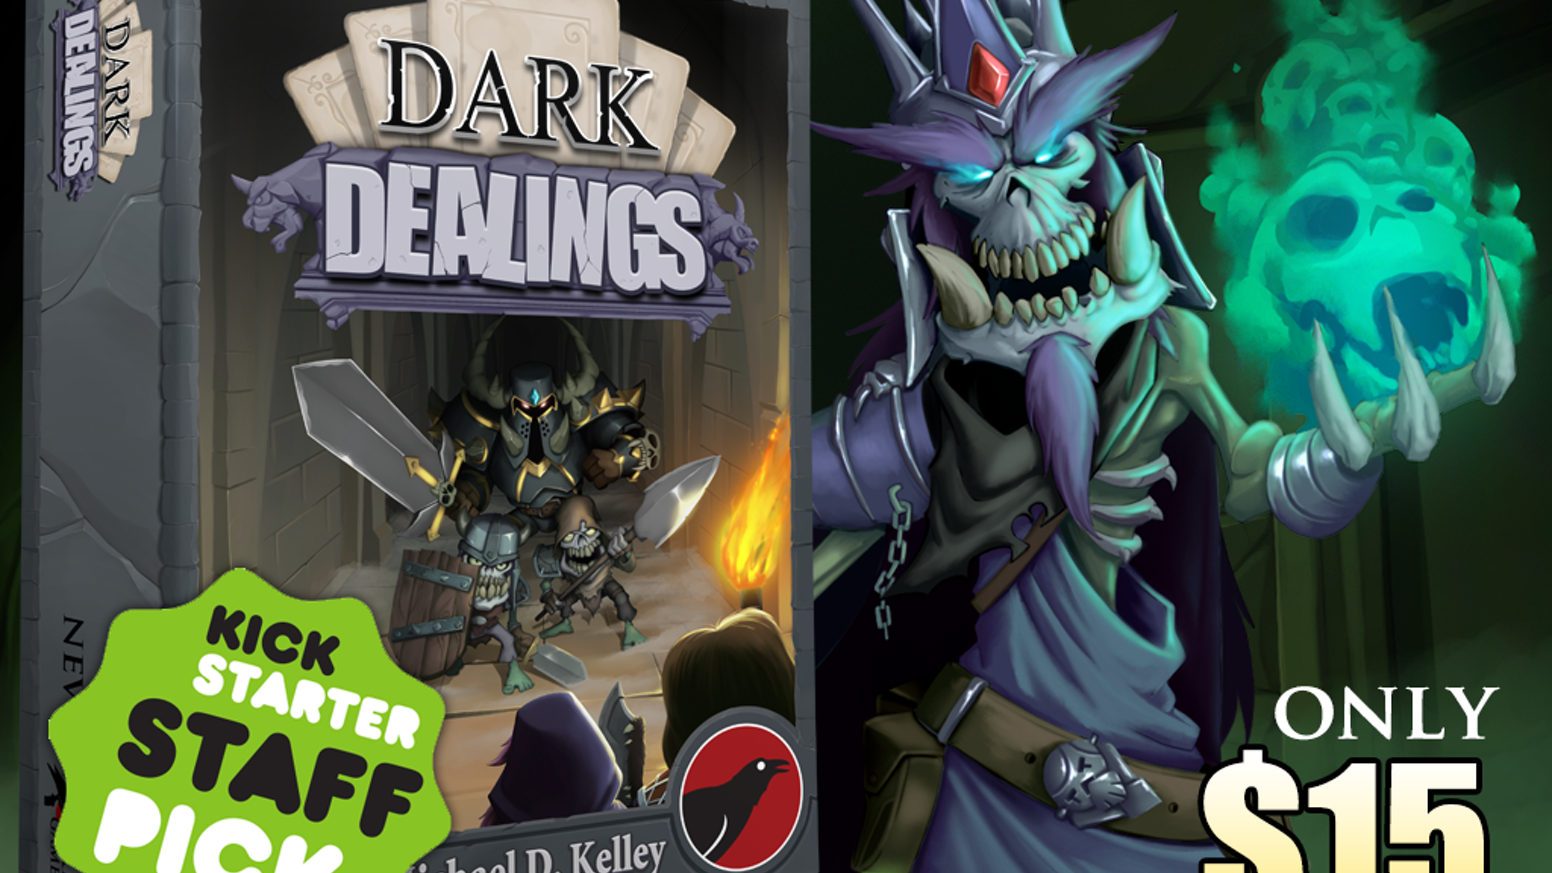 A New Kickstarter is Underway! Updated Dark Dealings, a Big Expansion + Lots of Expansion Packs, etc.Go pledge Now!